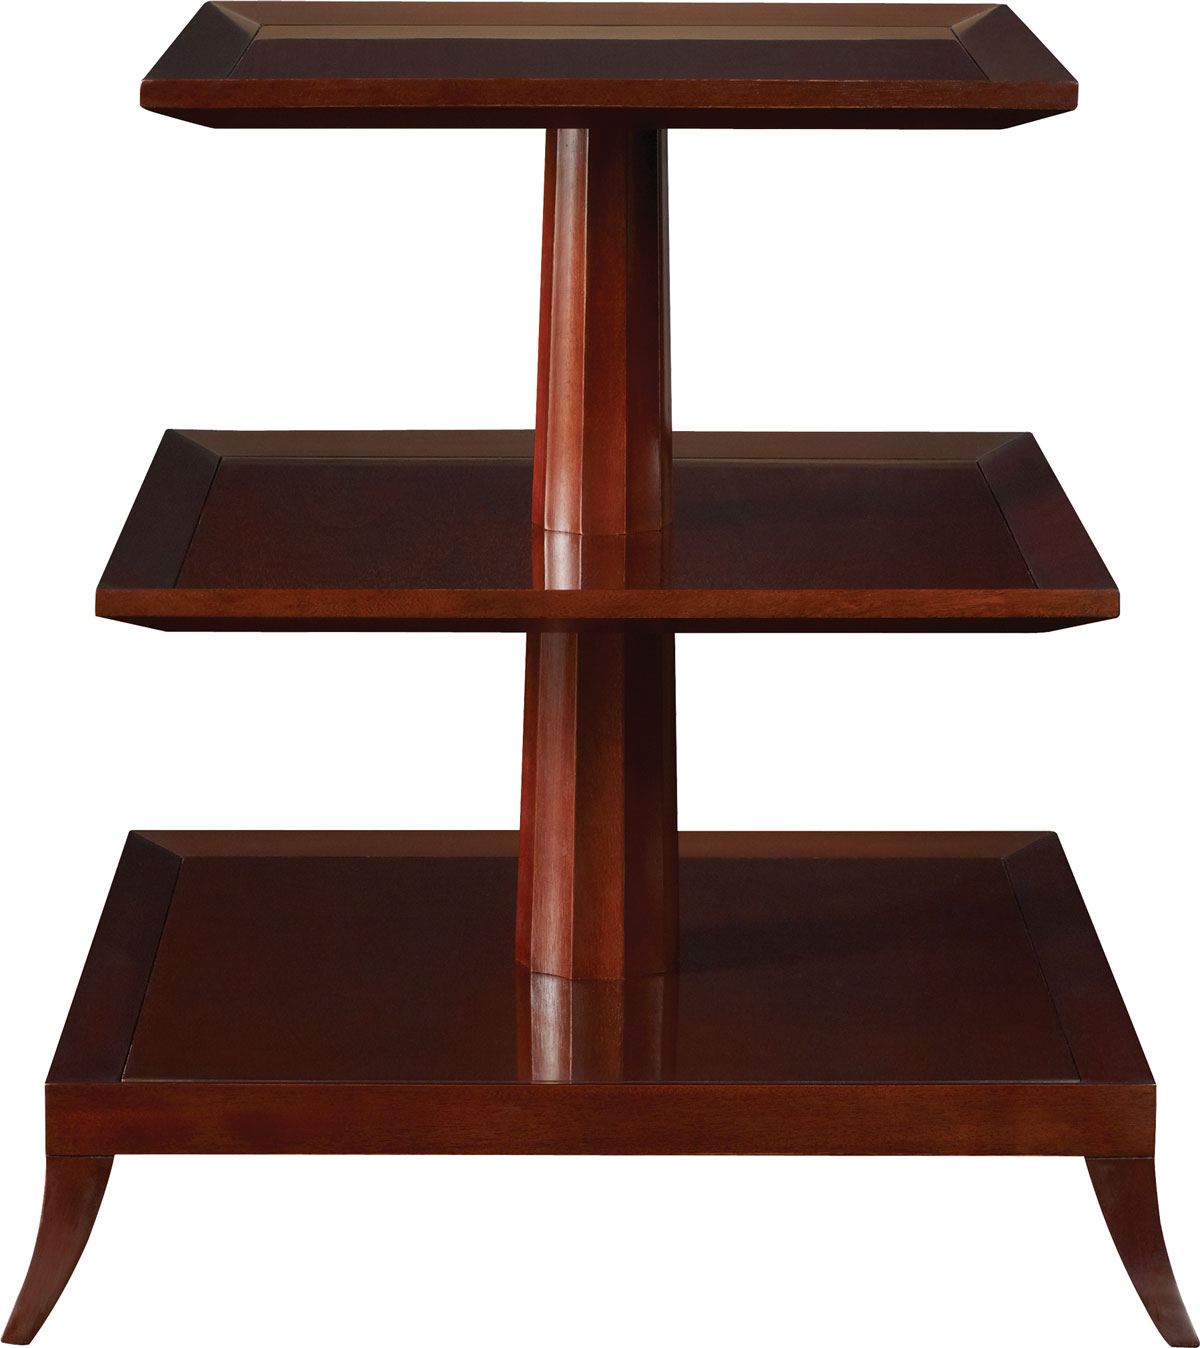 TOWER THREE TIER TABLE